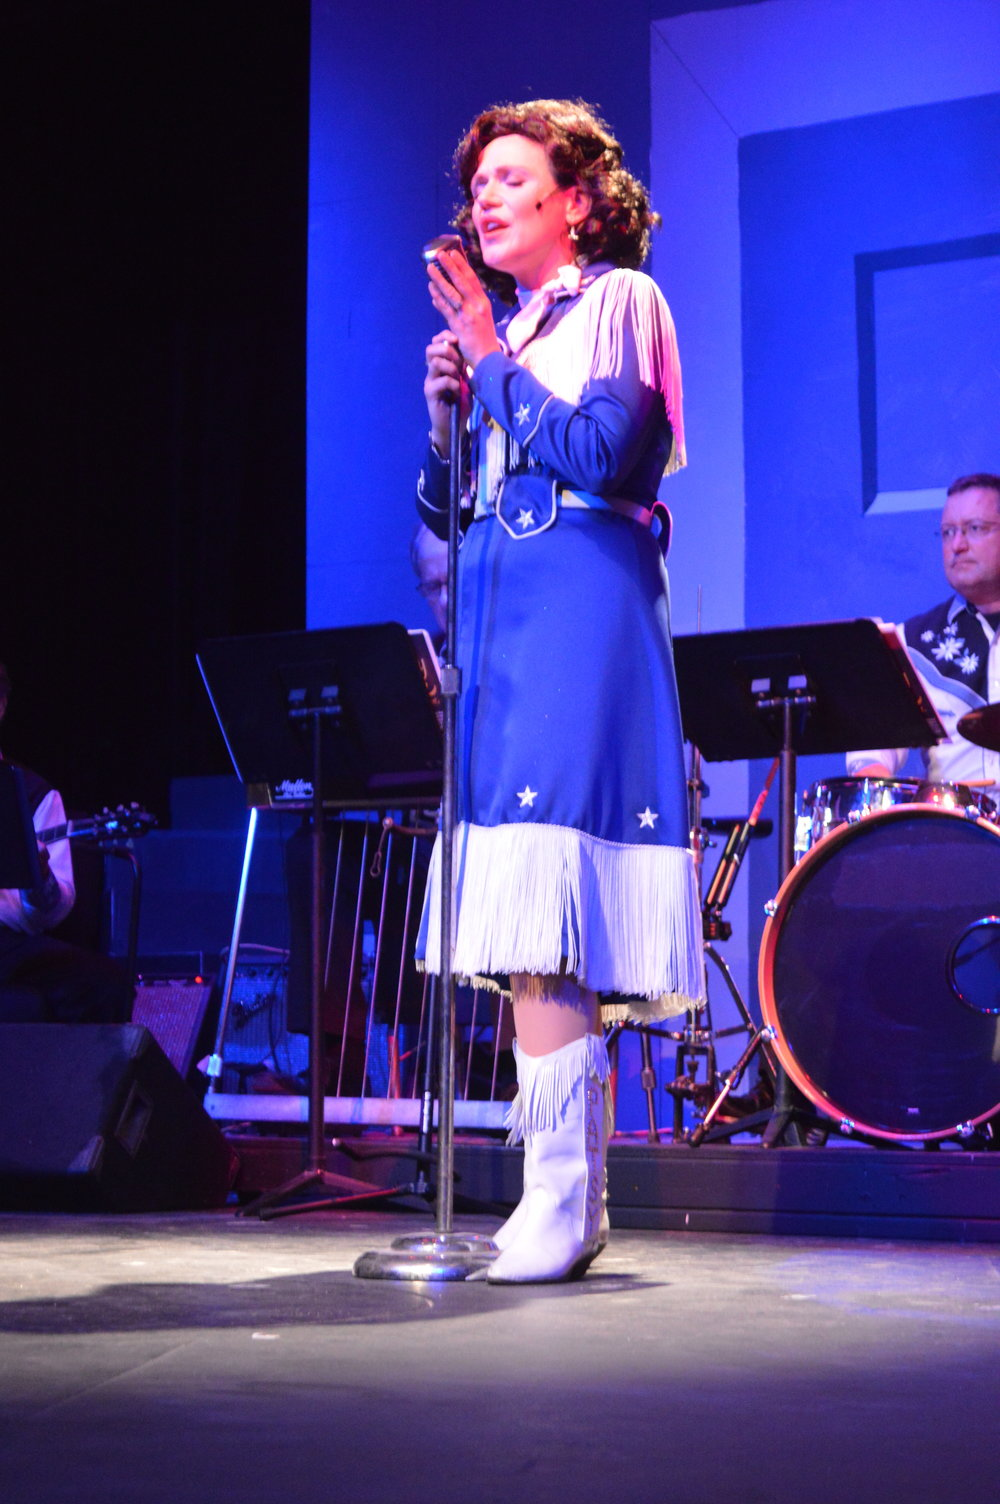 Melissa K. Shepherd as Patsy Cline